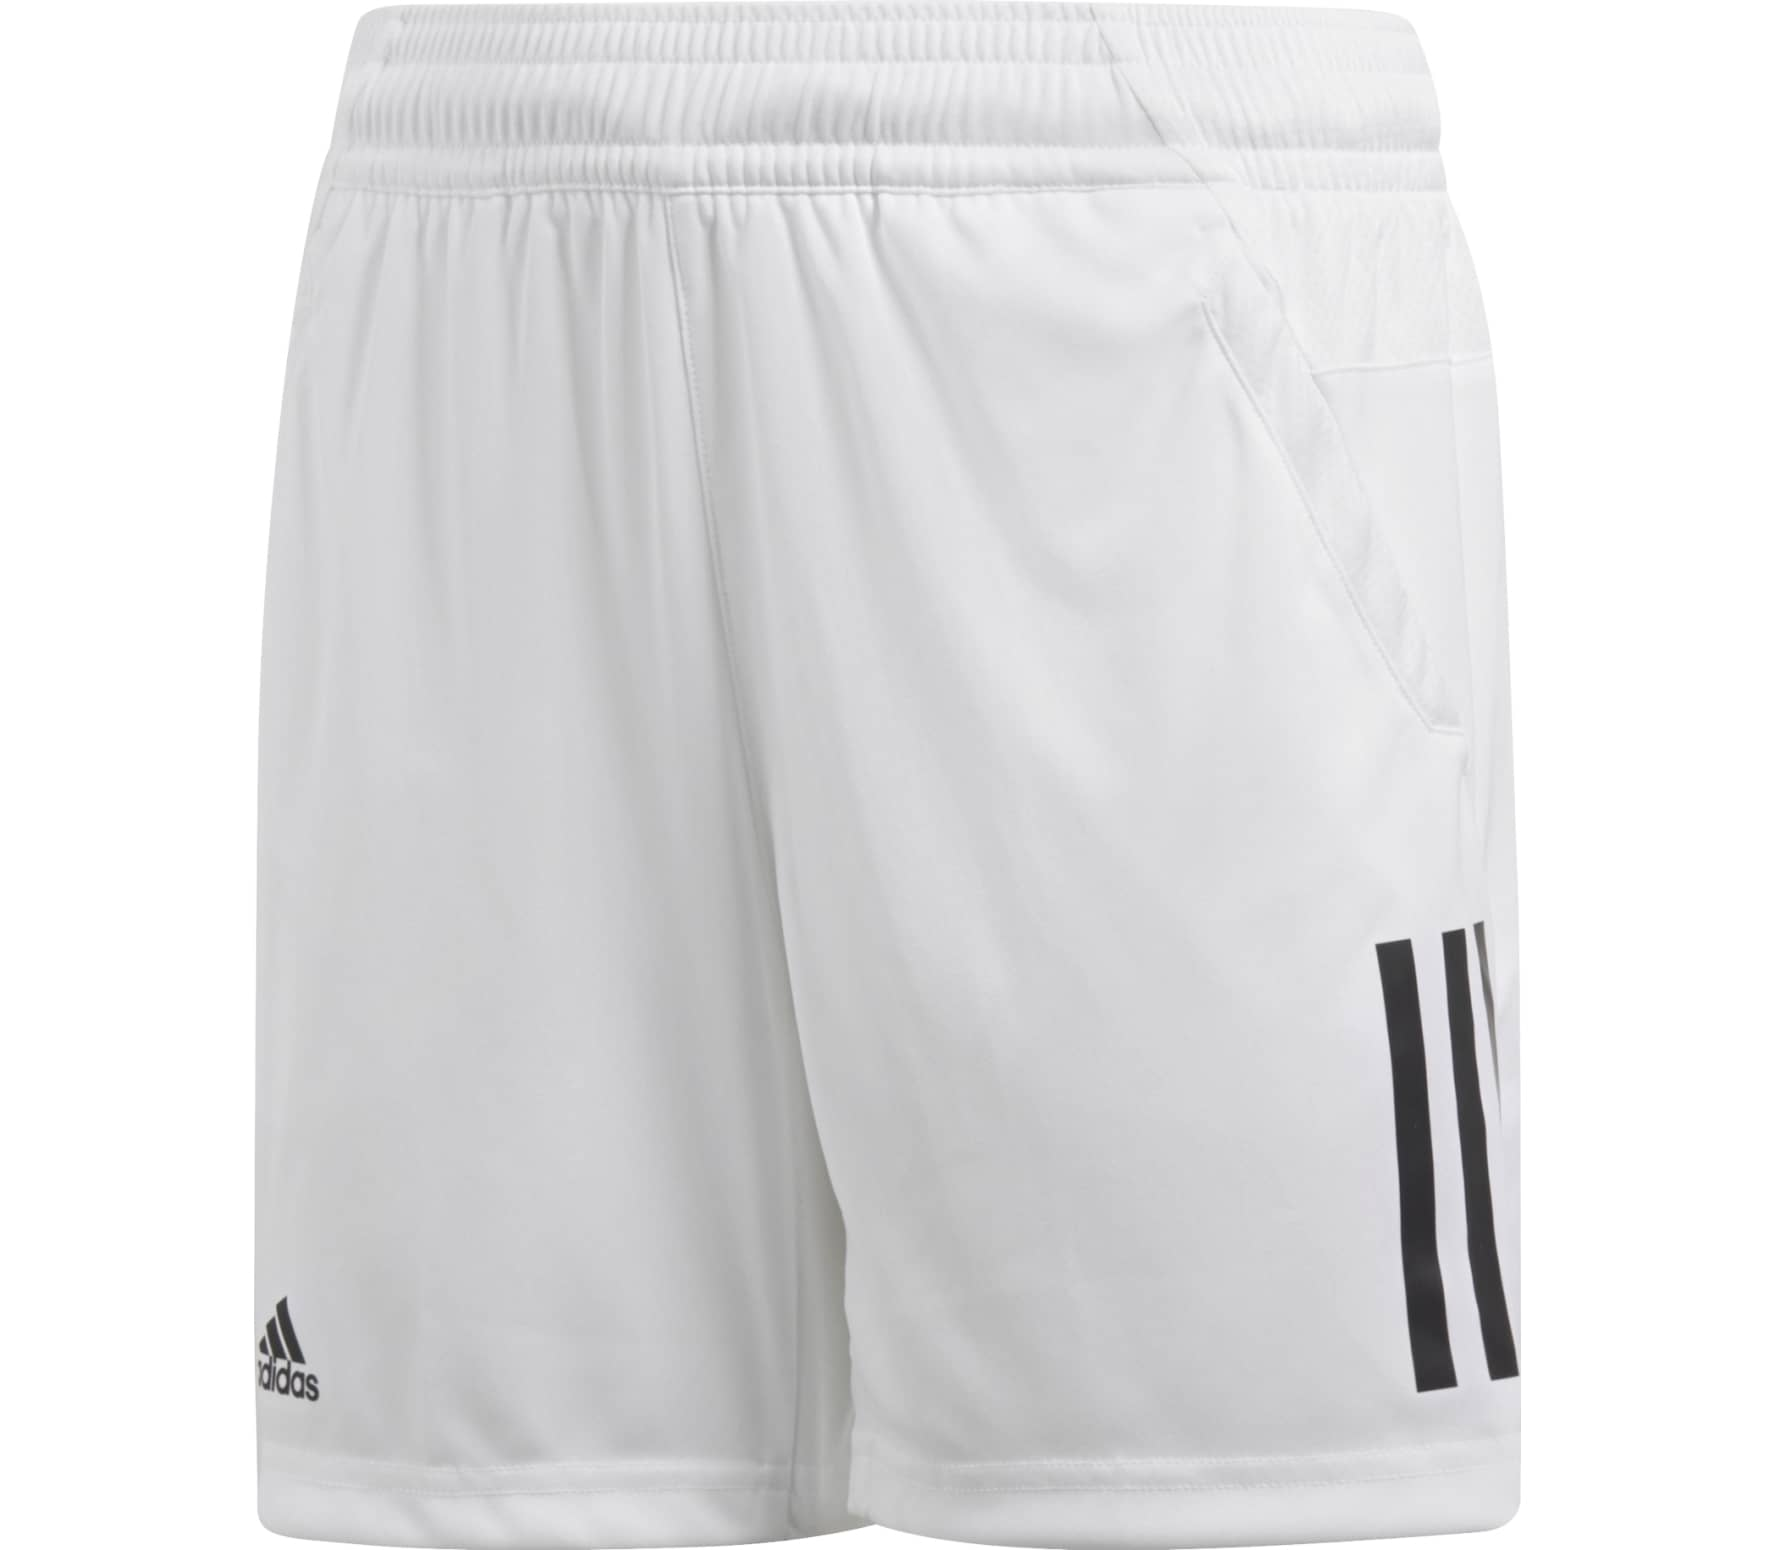 7dc16326336467 Adidas - Boys 3-Stripes Club Children tennis shorts (white) - buy it ...